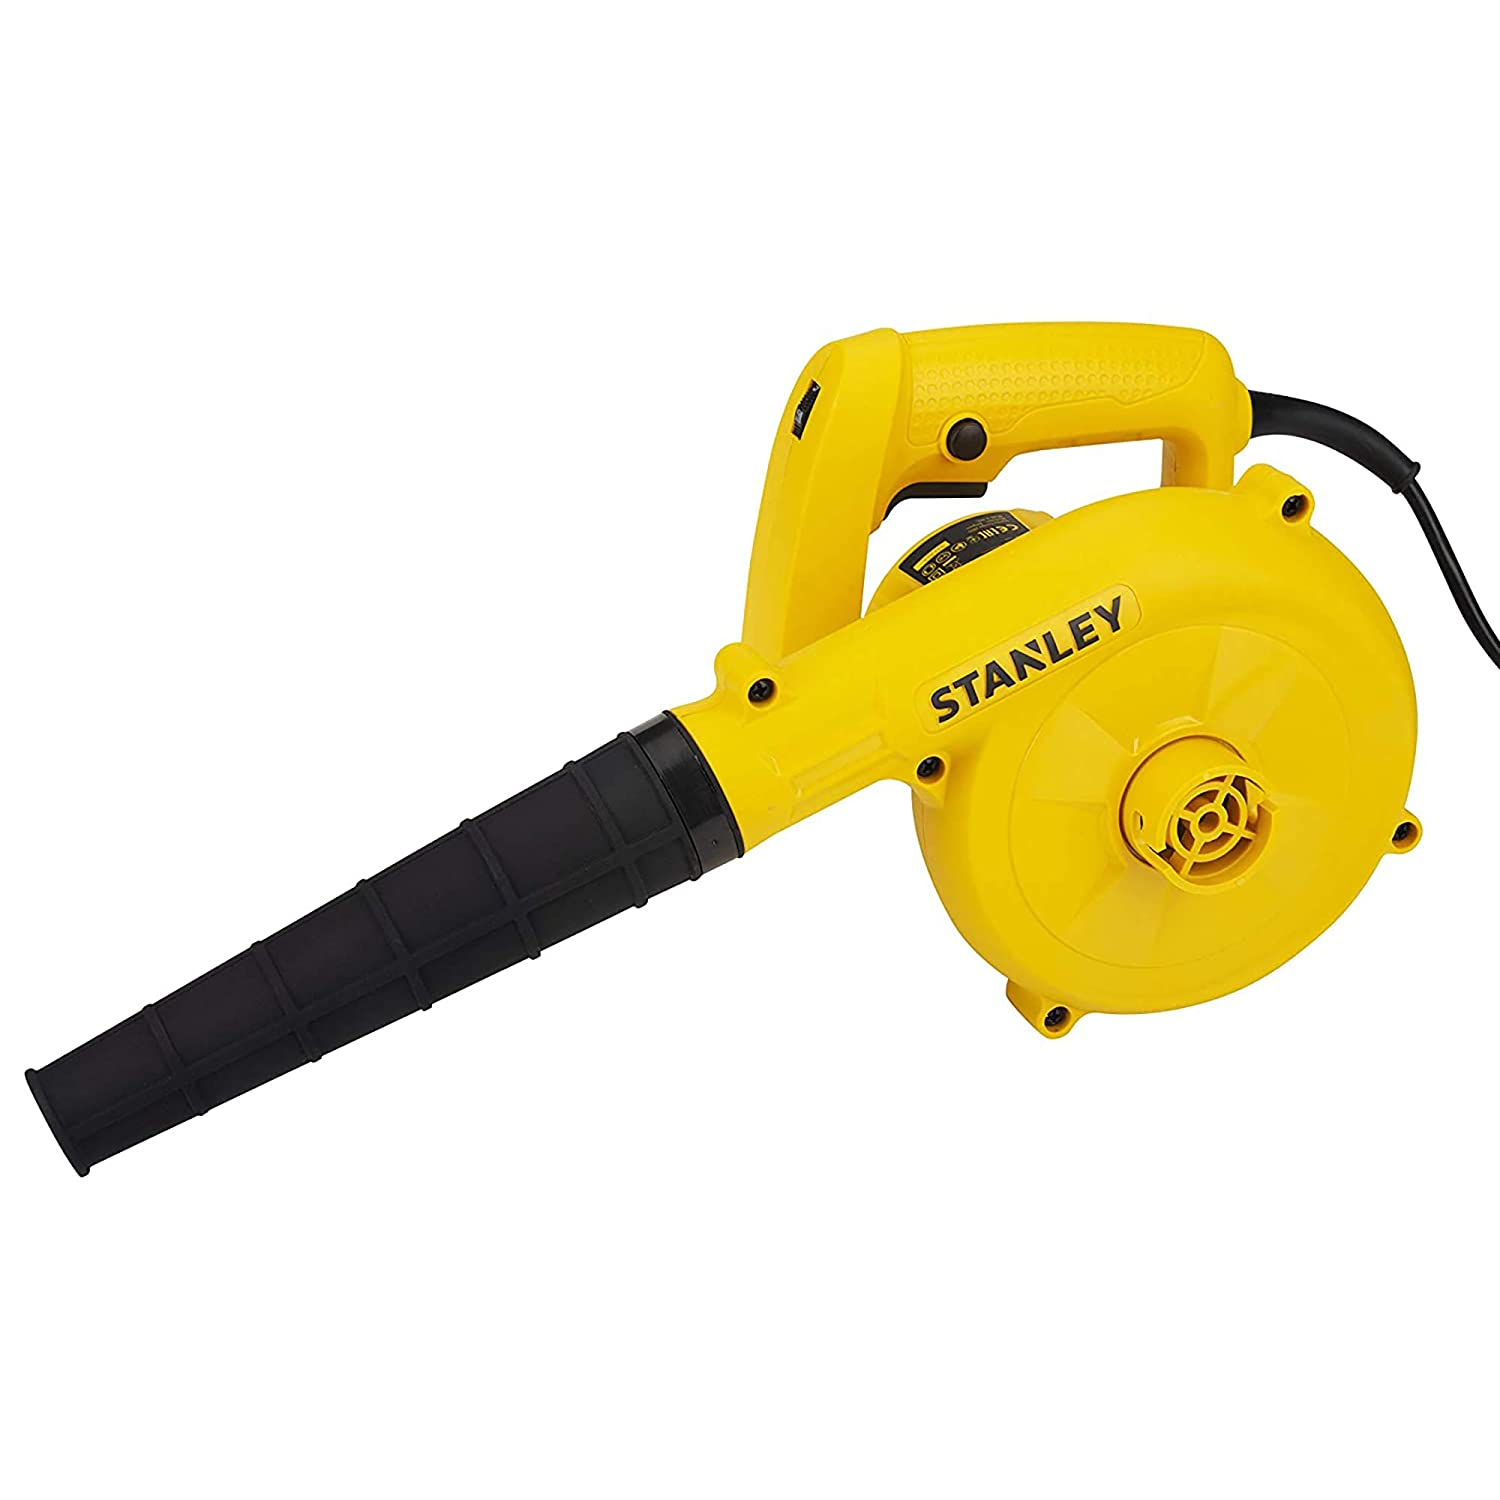 600W Variable Speed Blower